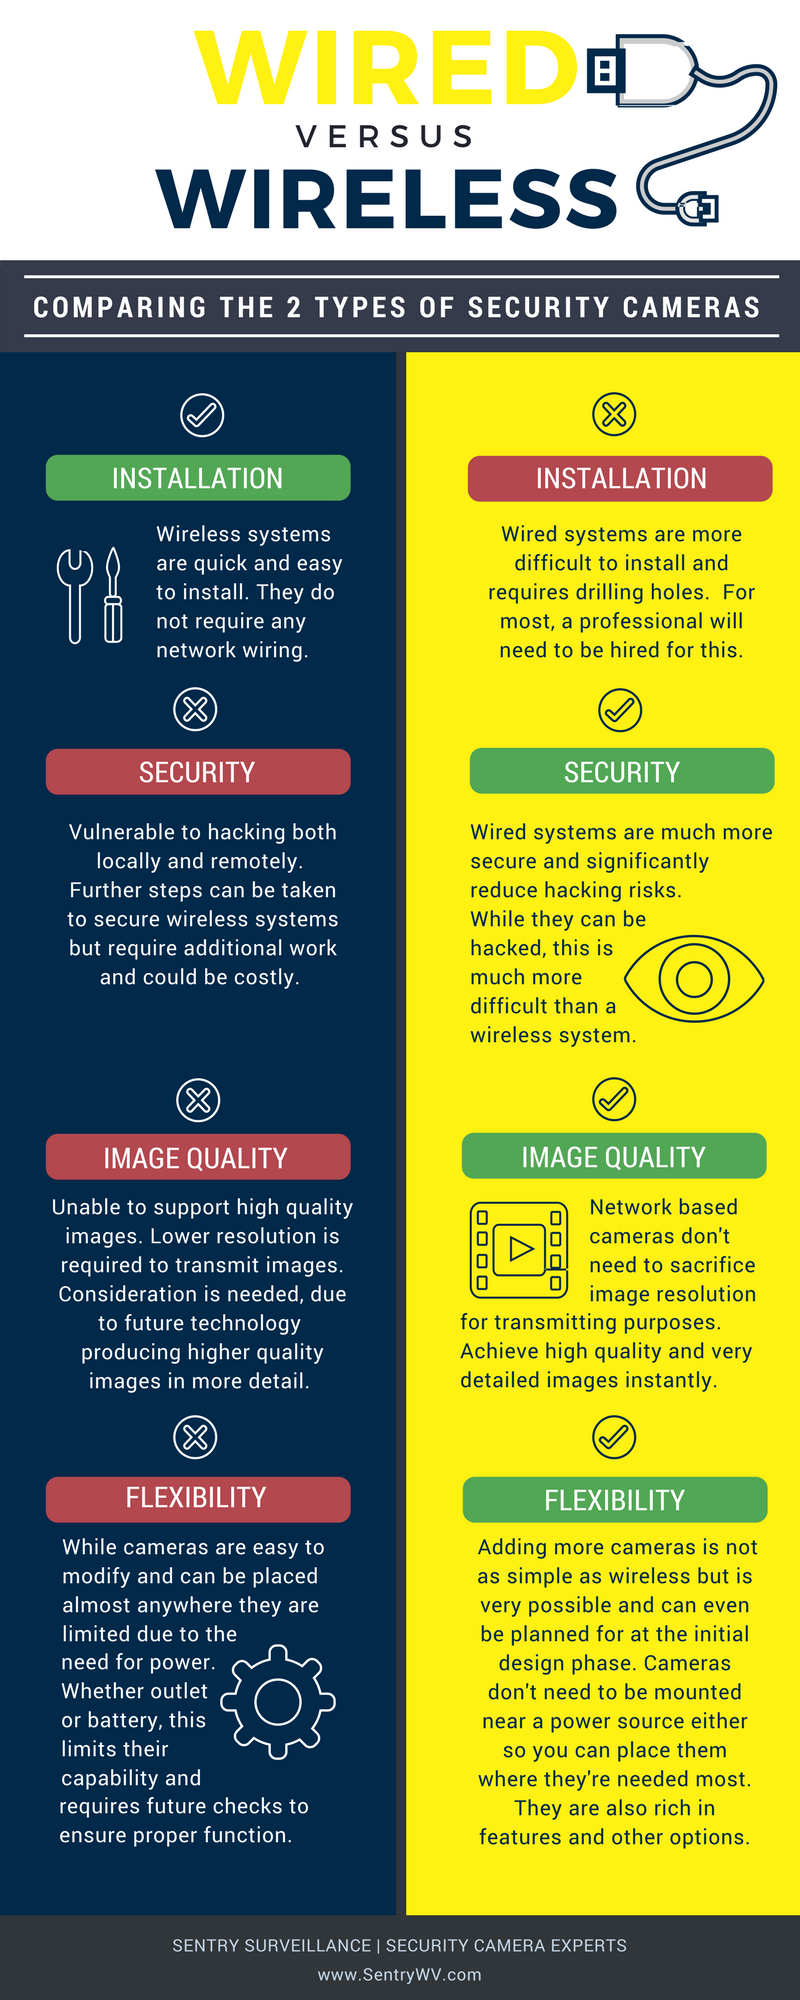 WIRED vs. WIRELESS Security Cameras | Infographic